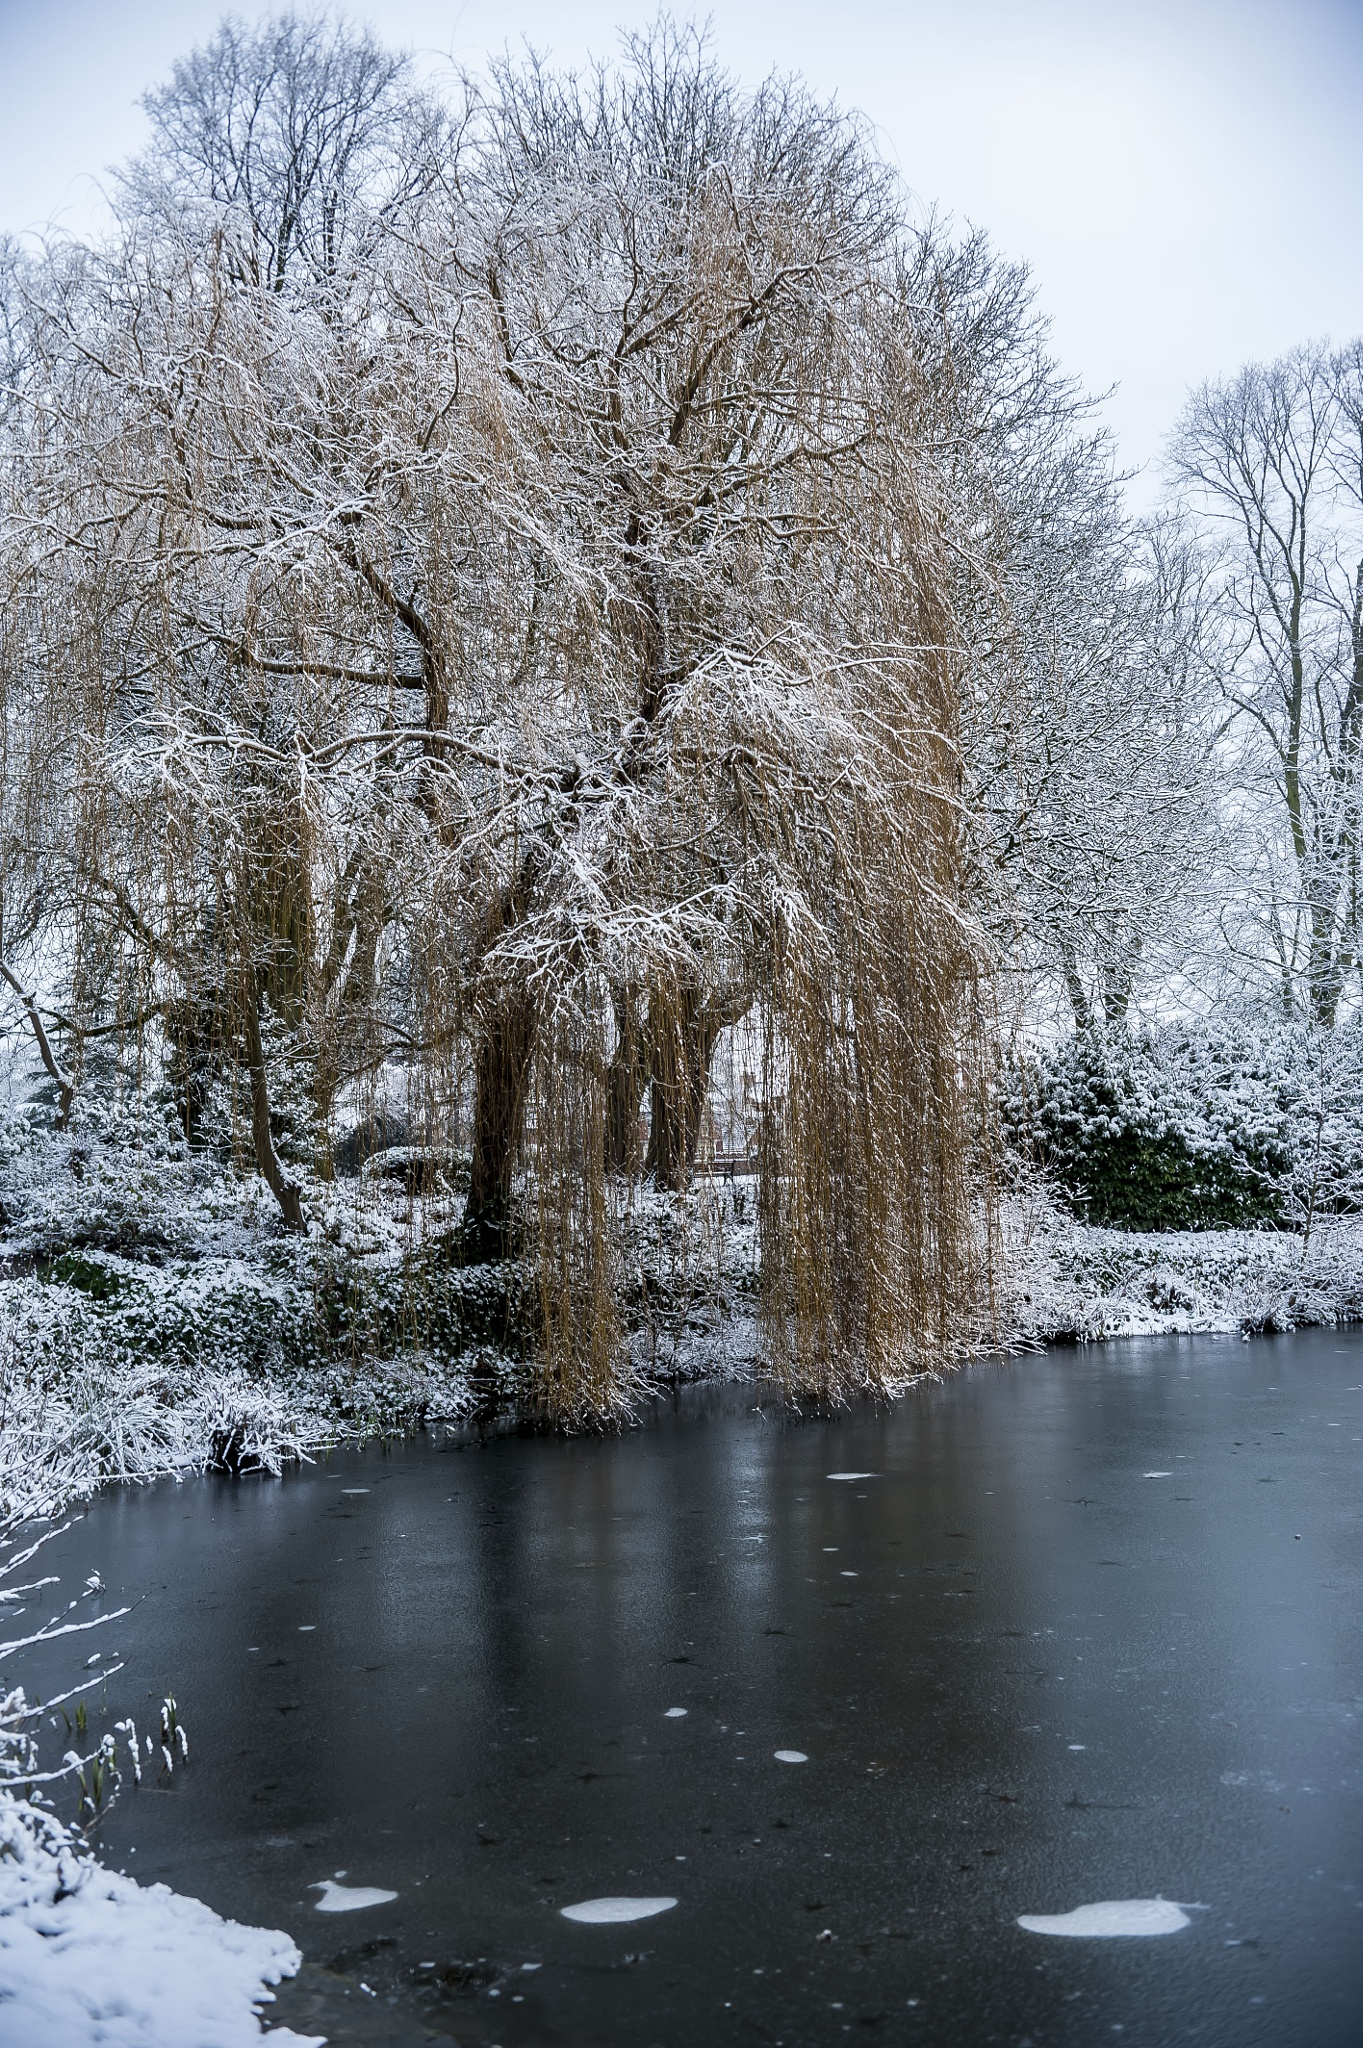 Chilly Willow by Pete Feeny